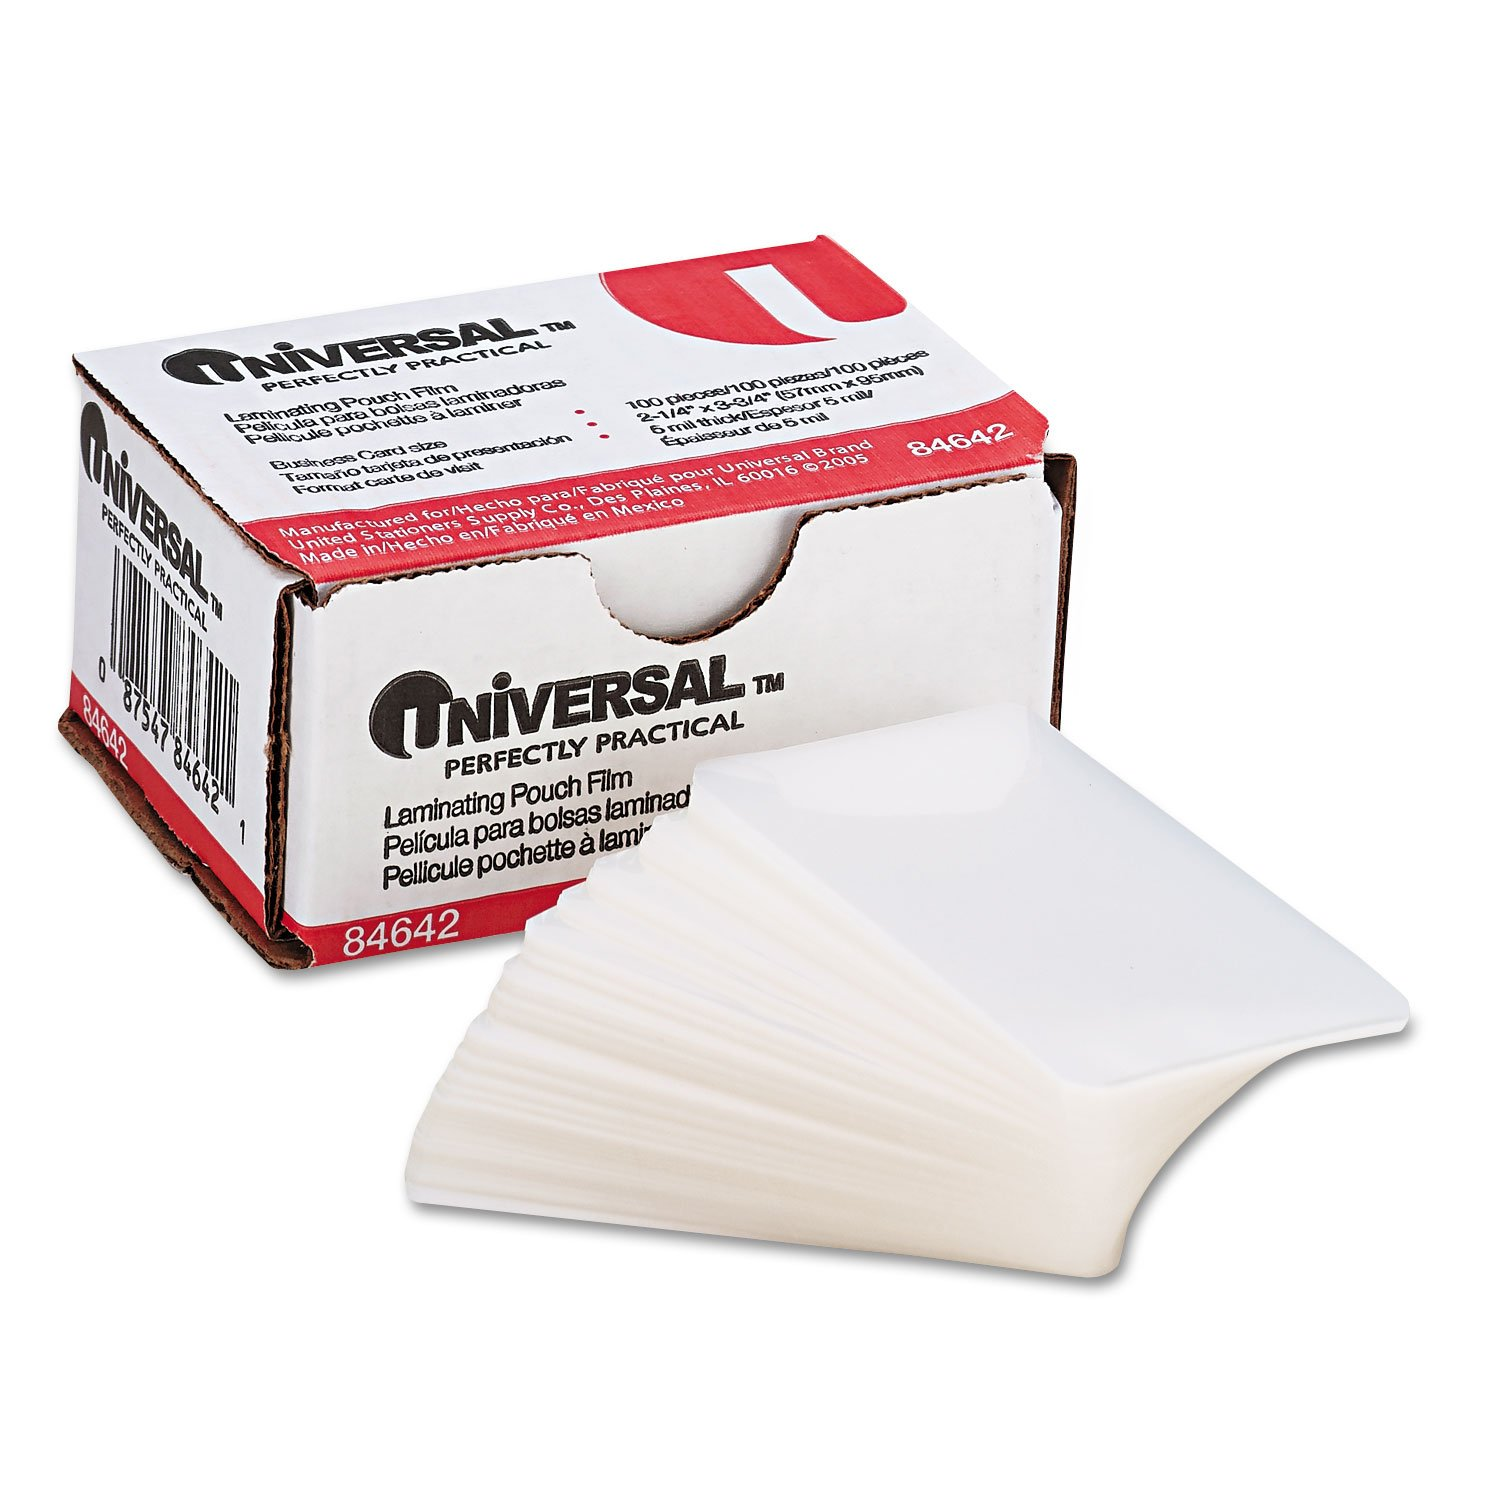 universal unv 100 per box clear laminating